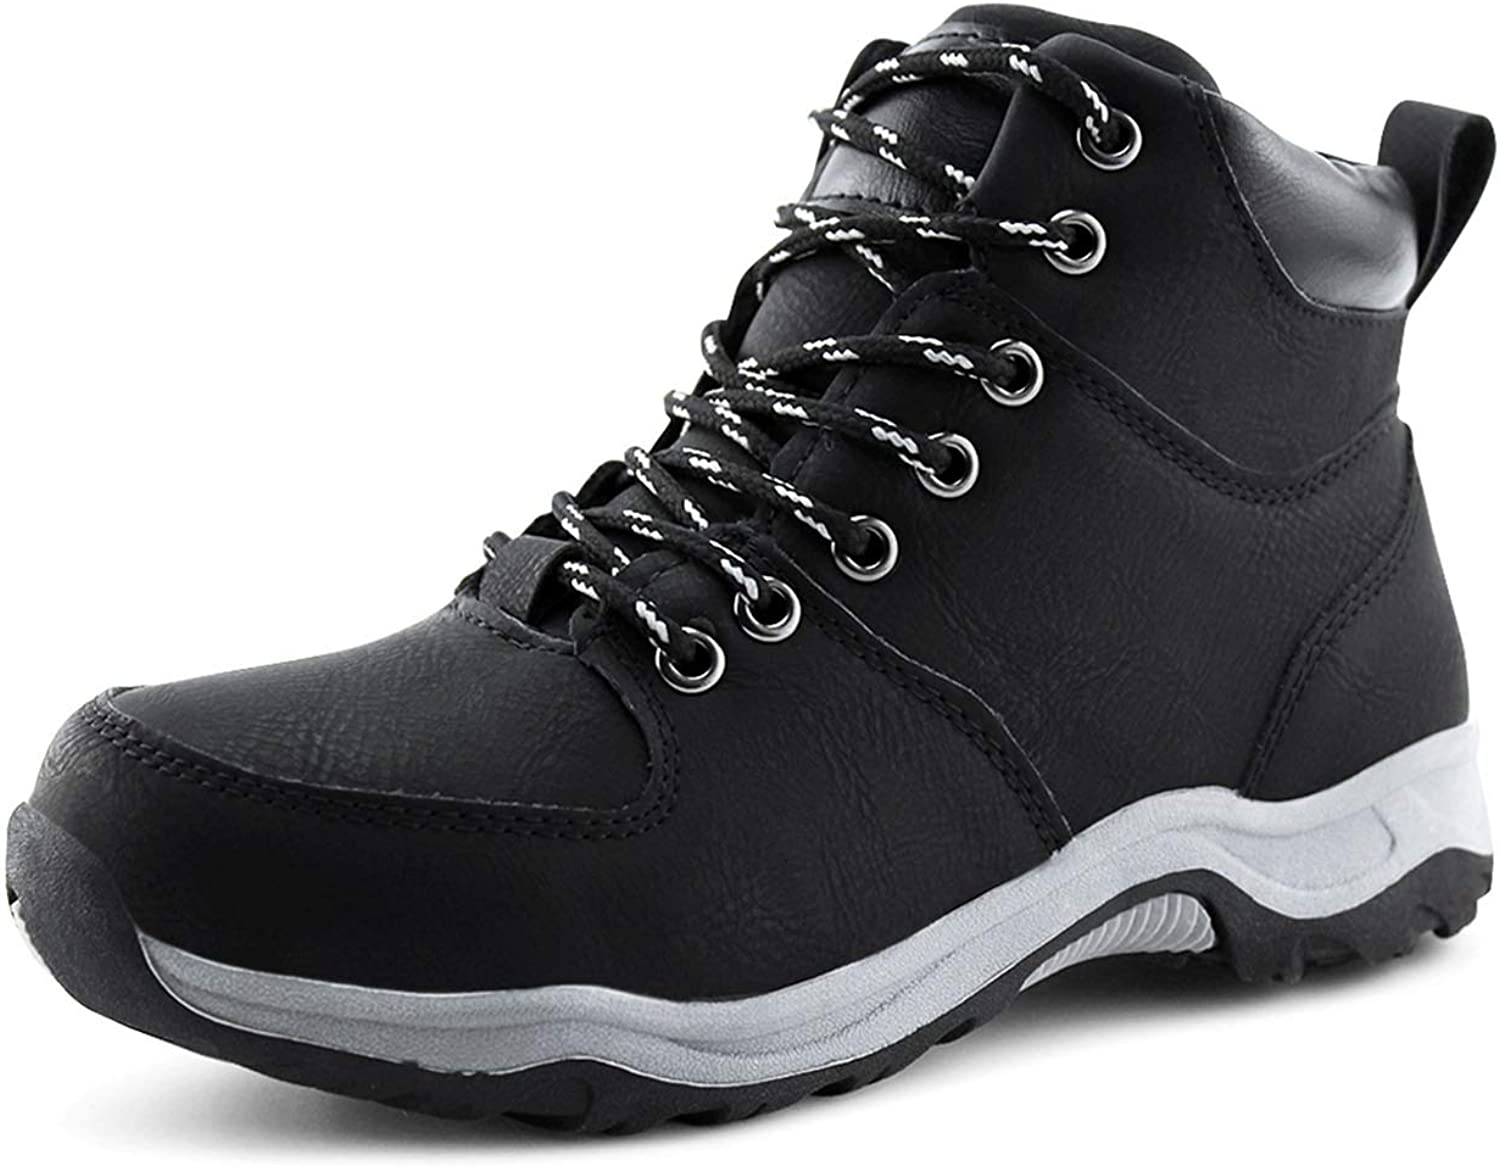 JABASIC Kids Ankle Snow Work Boots Boys Girls Outdoor Lace-up Hiking Shoes